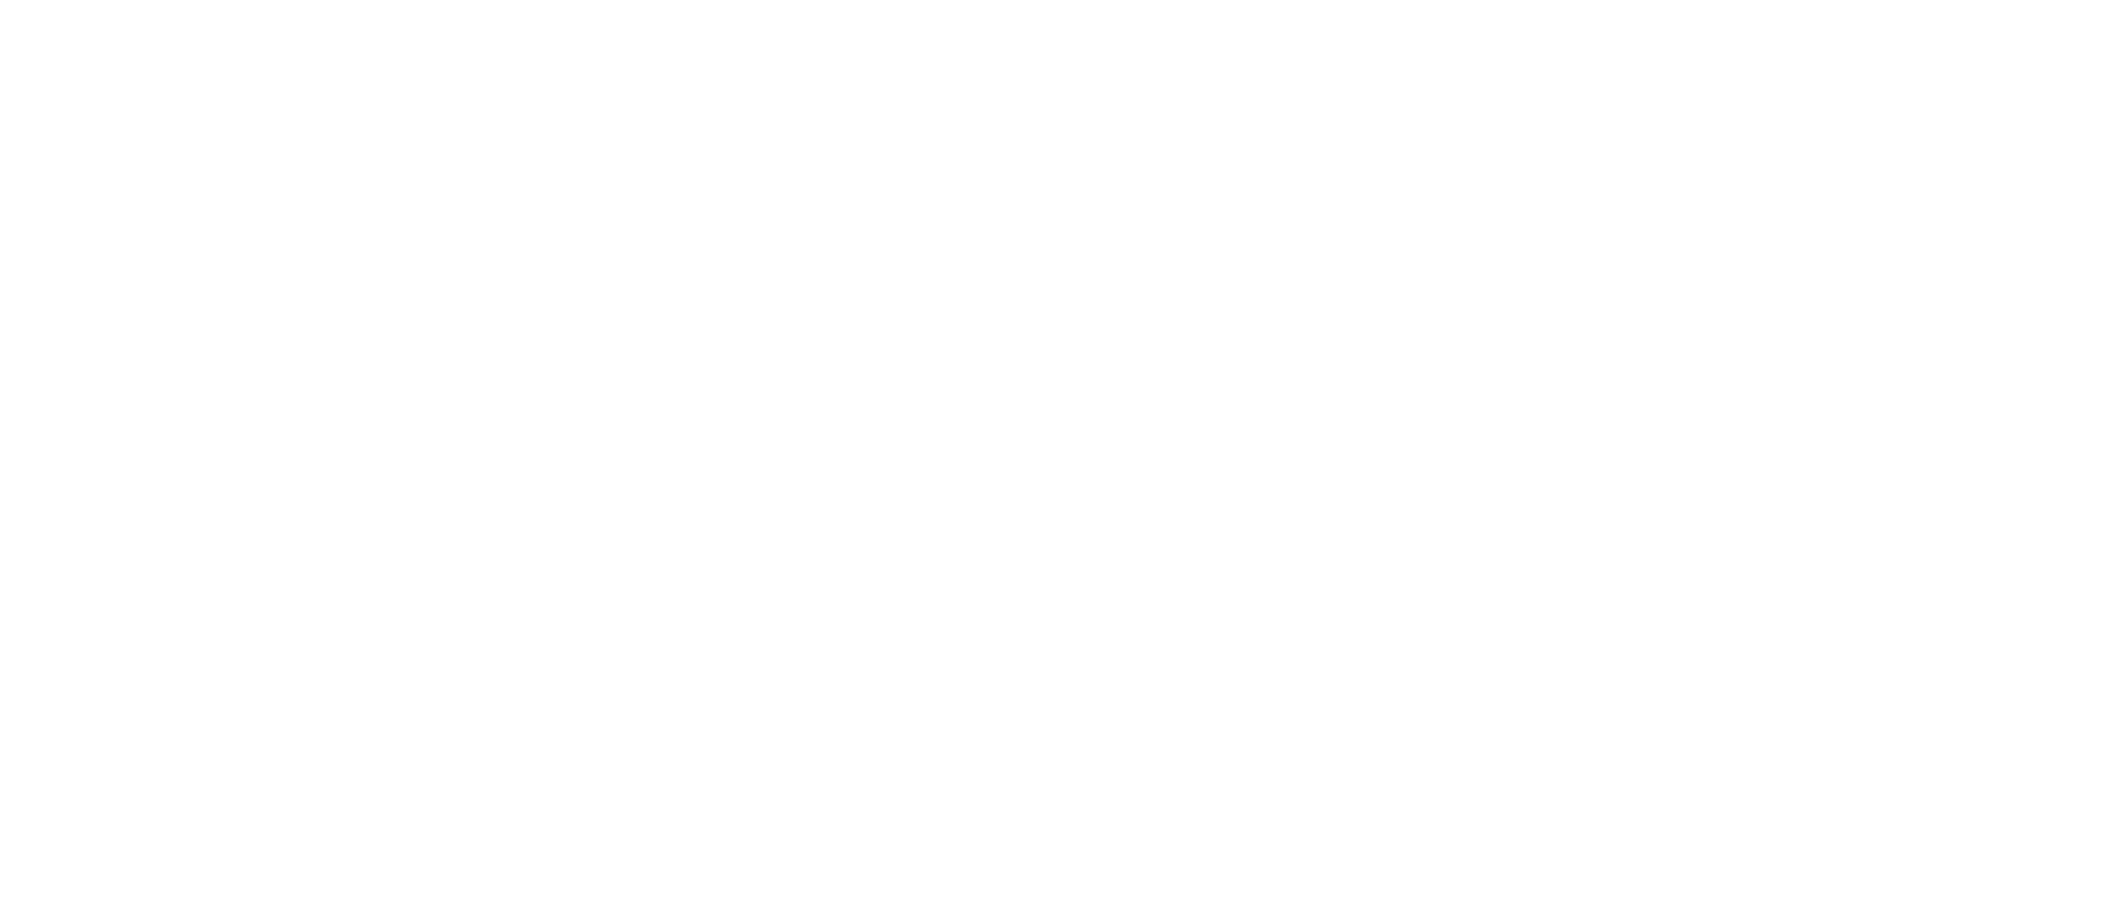 Uniting Ambition Group Google Review Score